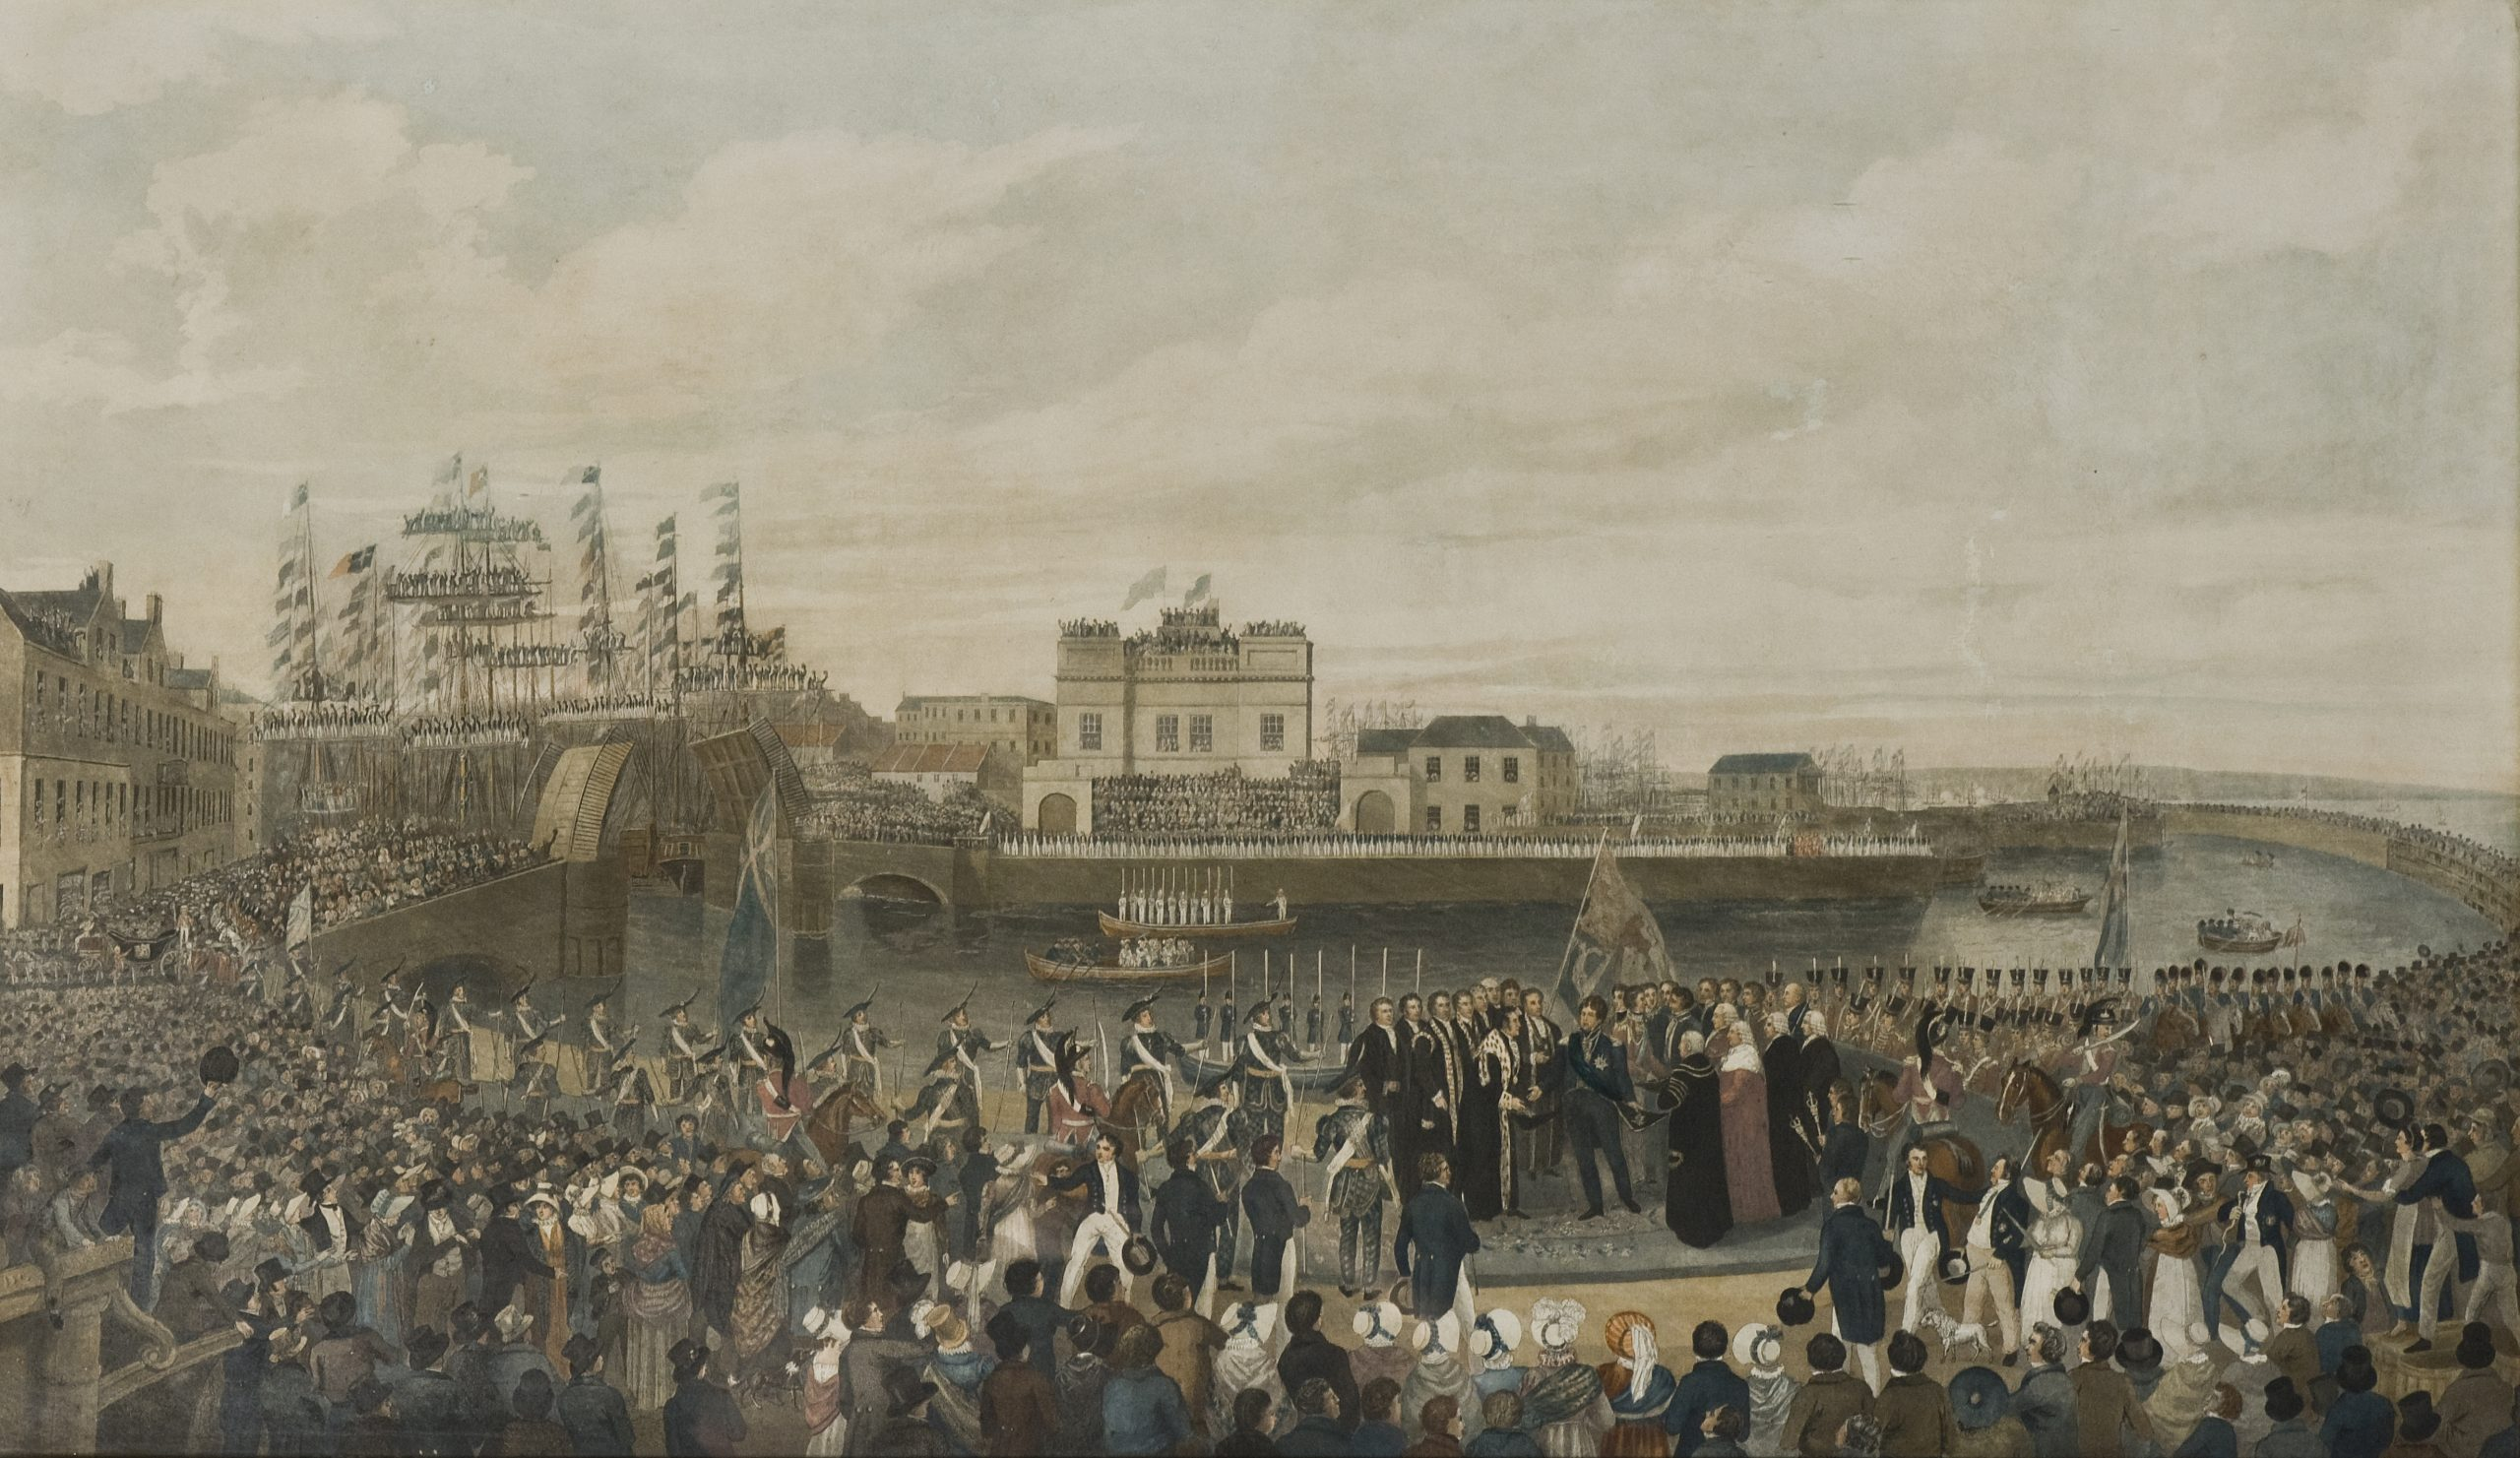 King George IV landing on the shore at Leith, 1822, by Alexander Carse (1770-1843)